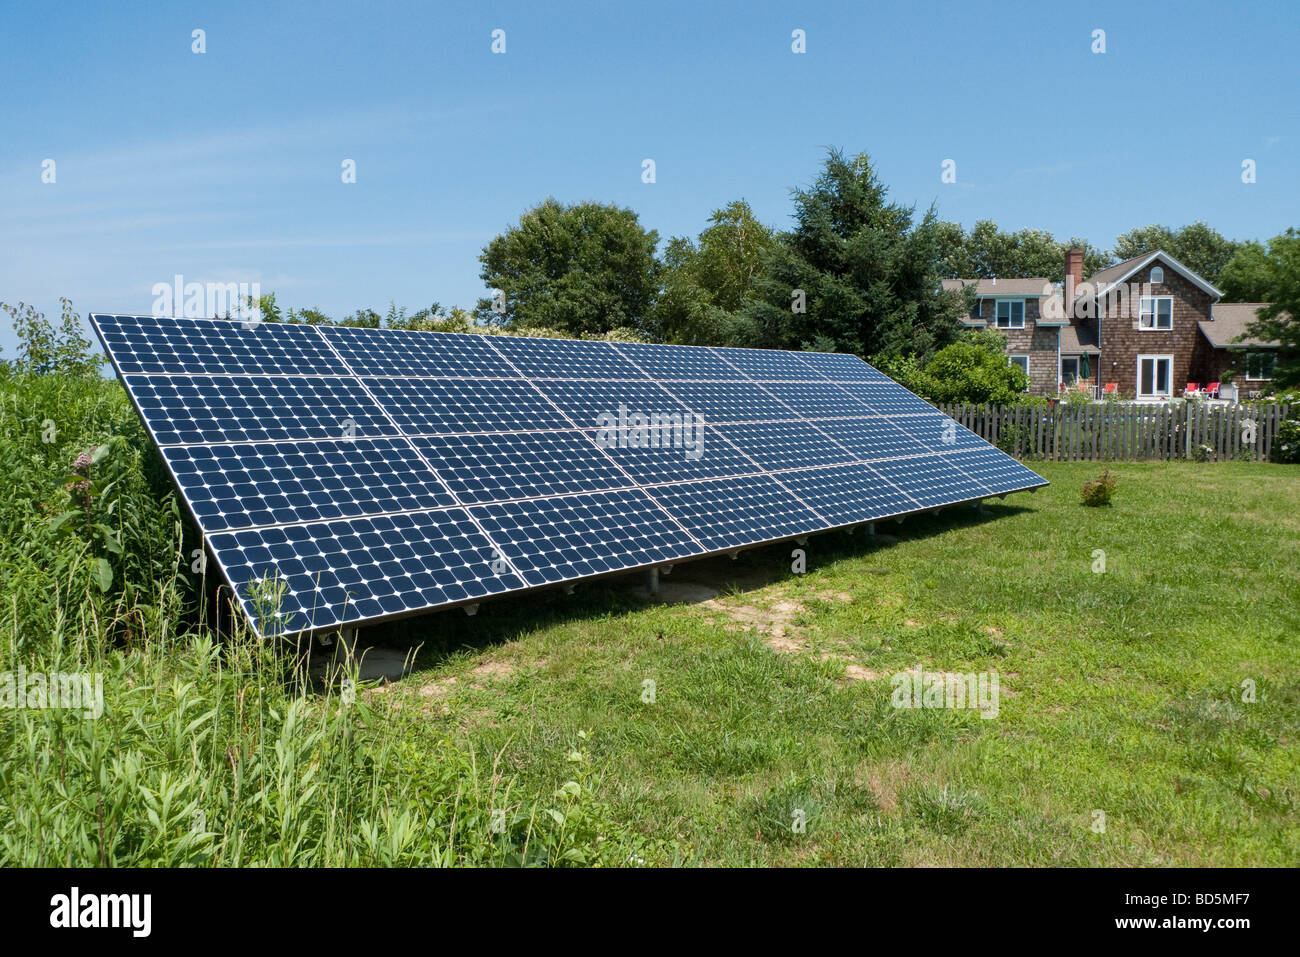 SunPower solar energy panel with photovoltaic cell grid installed. Home that it helps power is in the background. - Stock Image